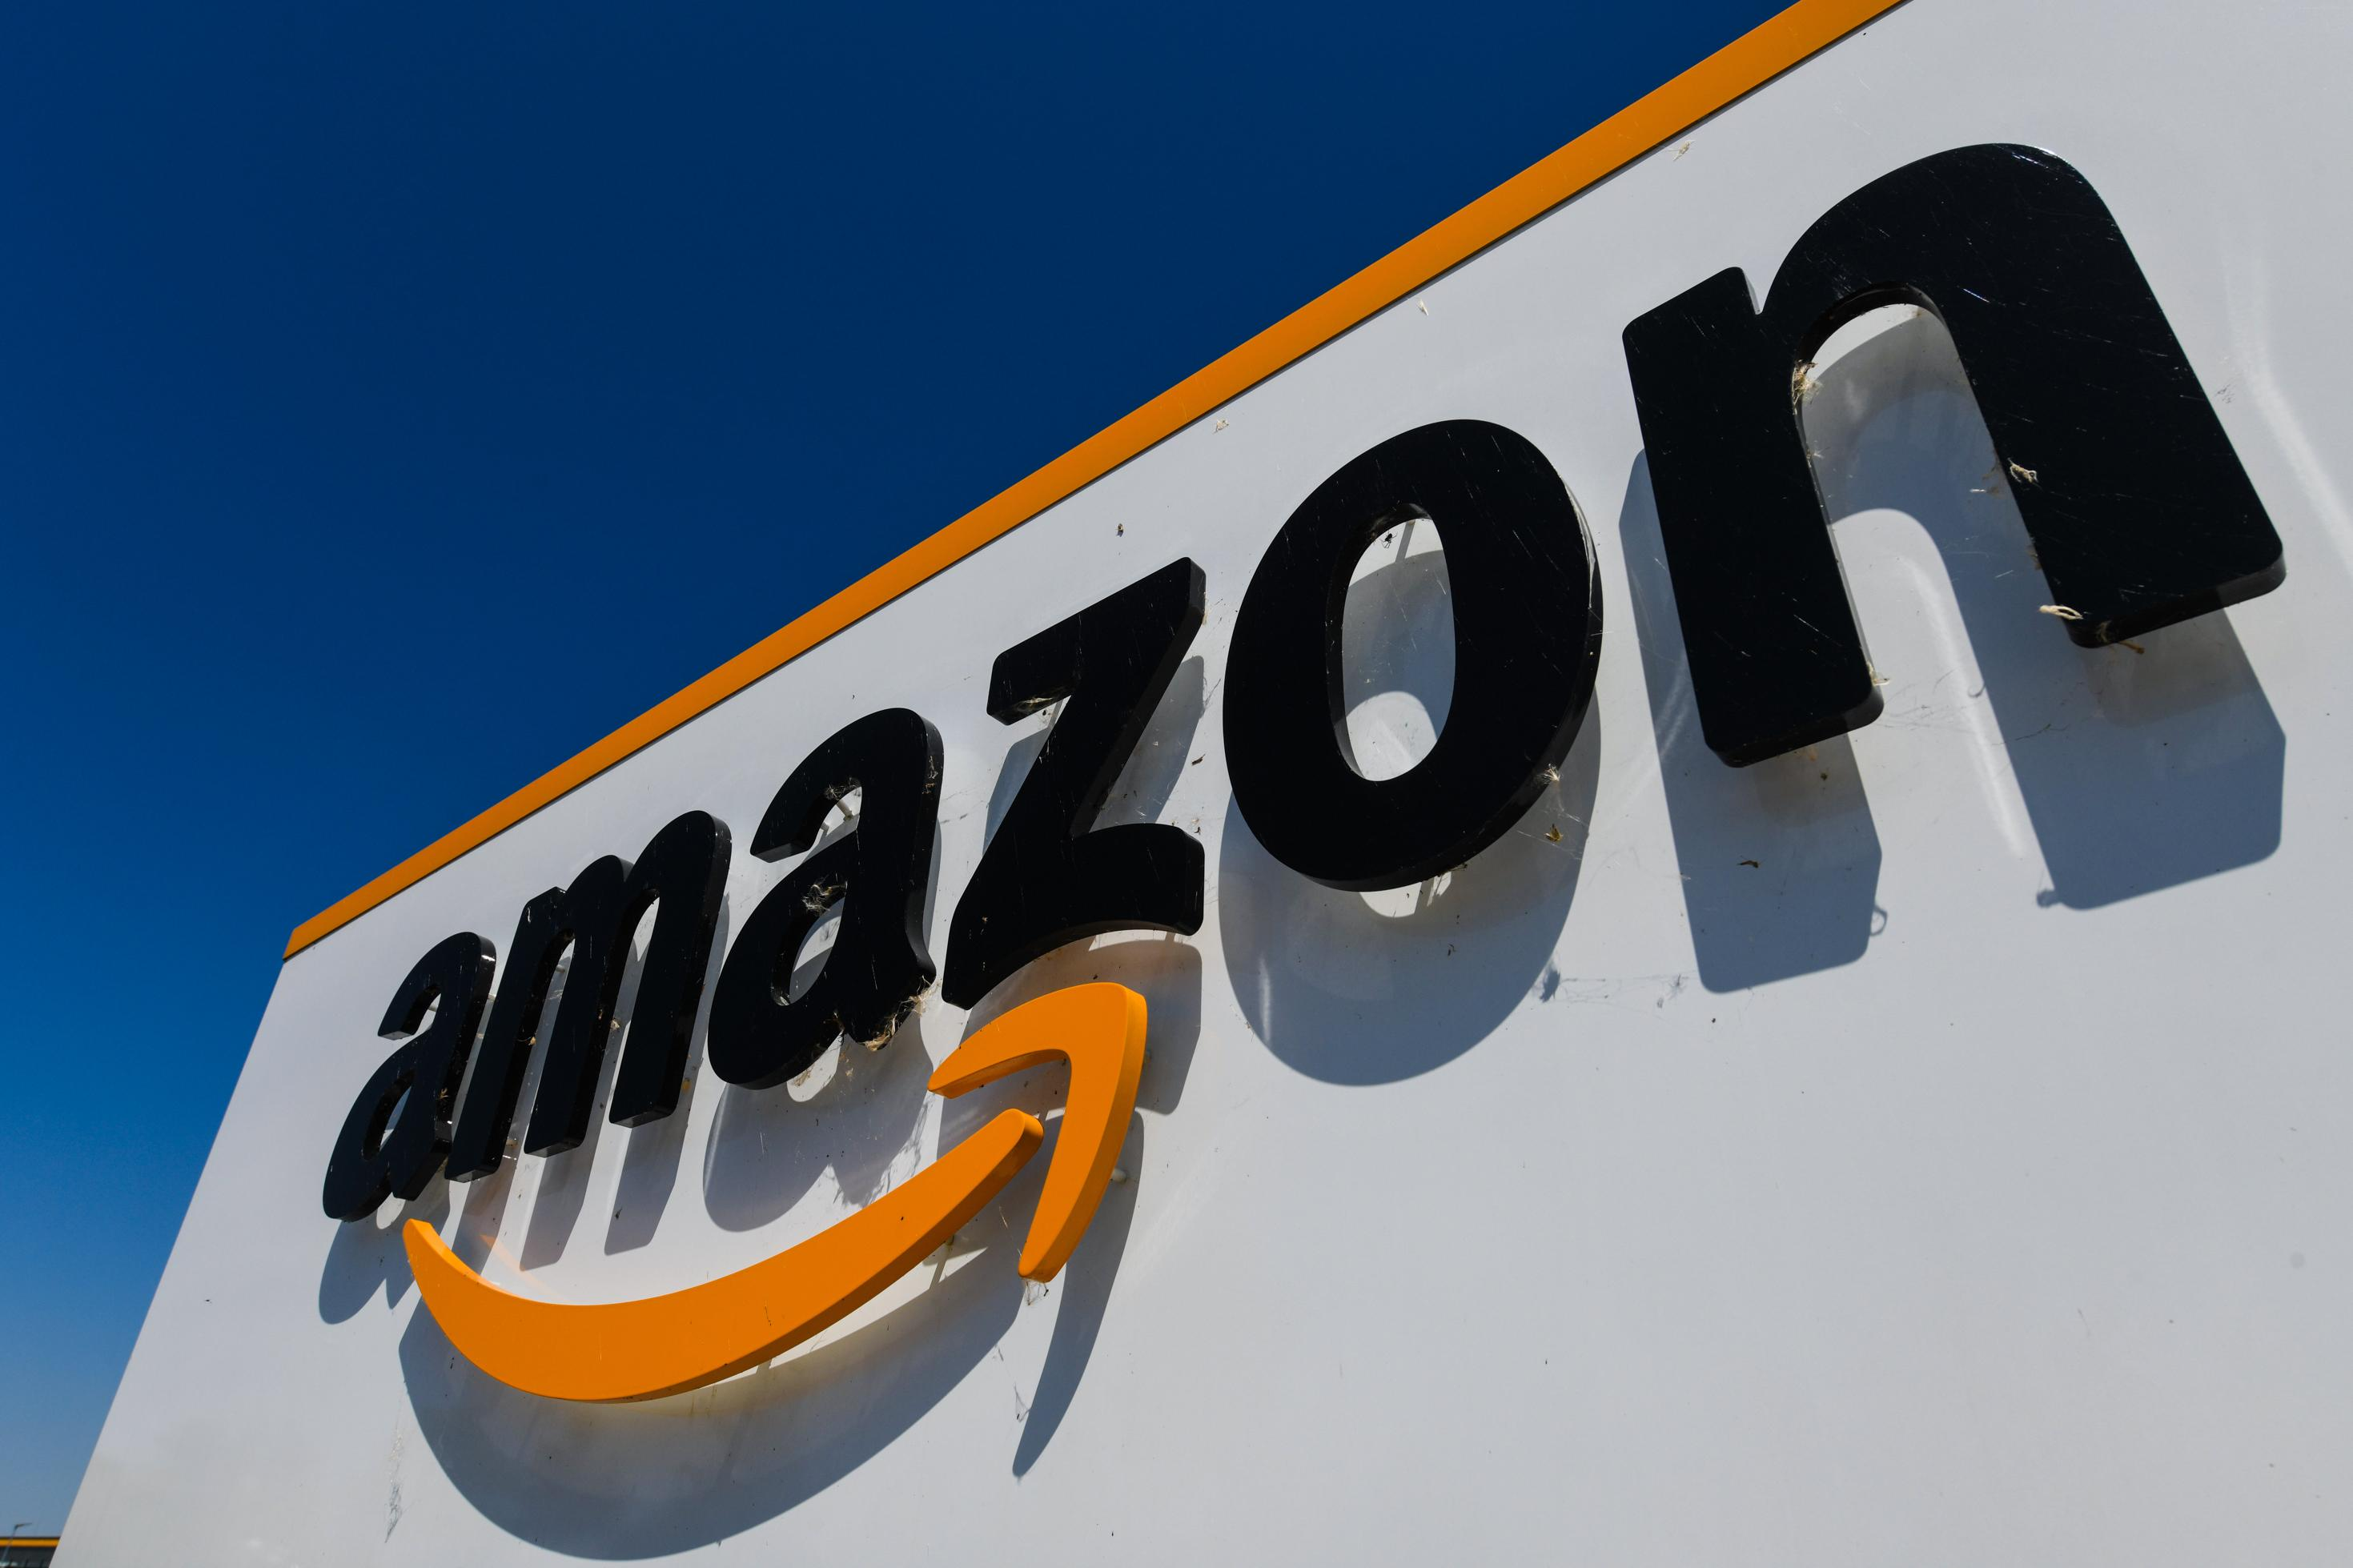 Ex-antitrust prosecutor on Amazon: 'There is plenty there for enforcers to go after'